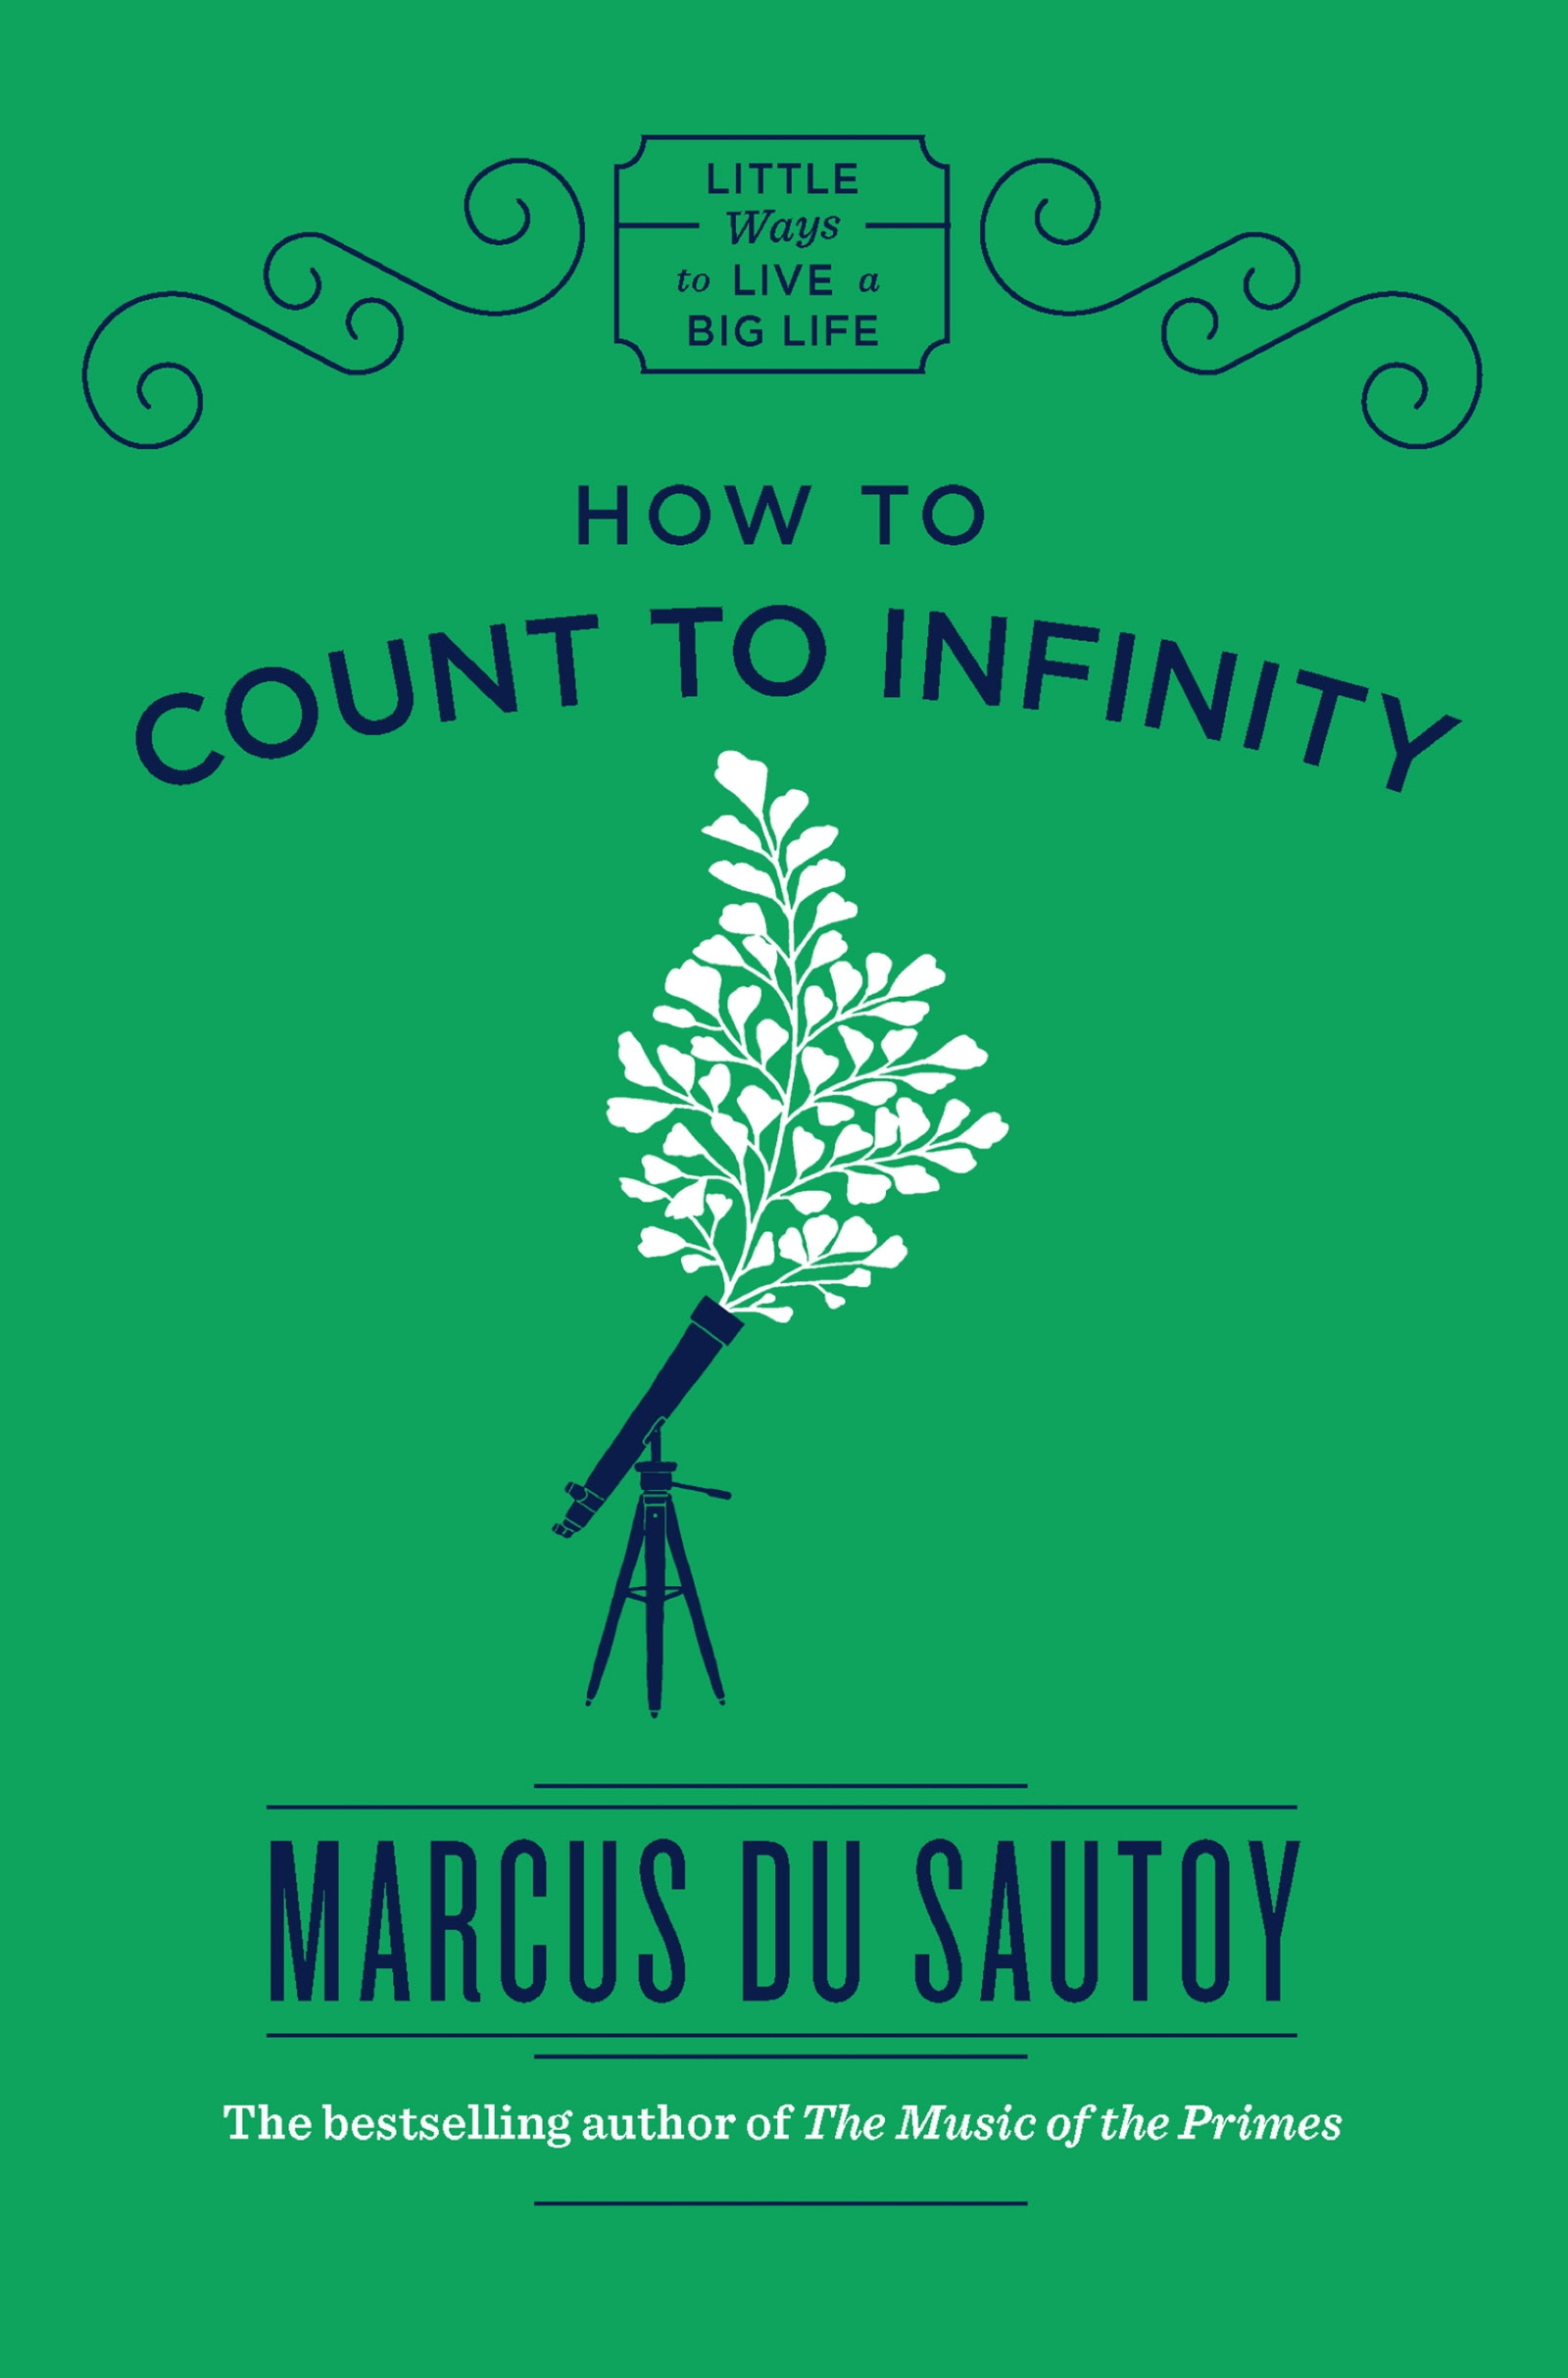 How to Count to Infinity